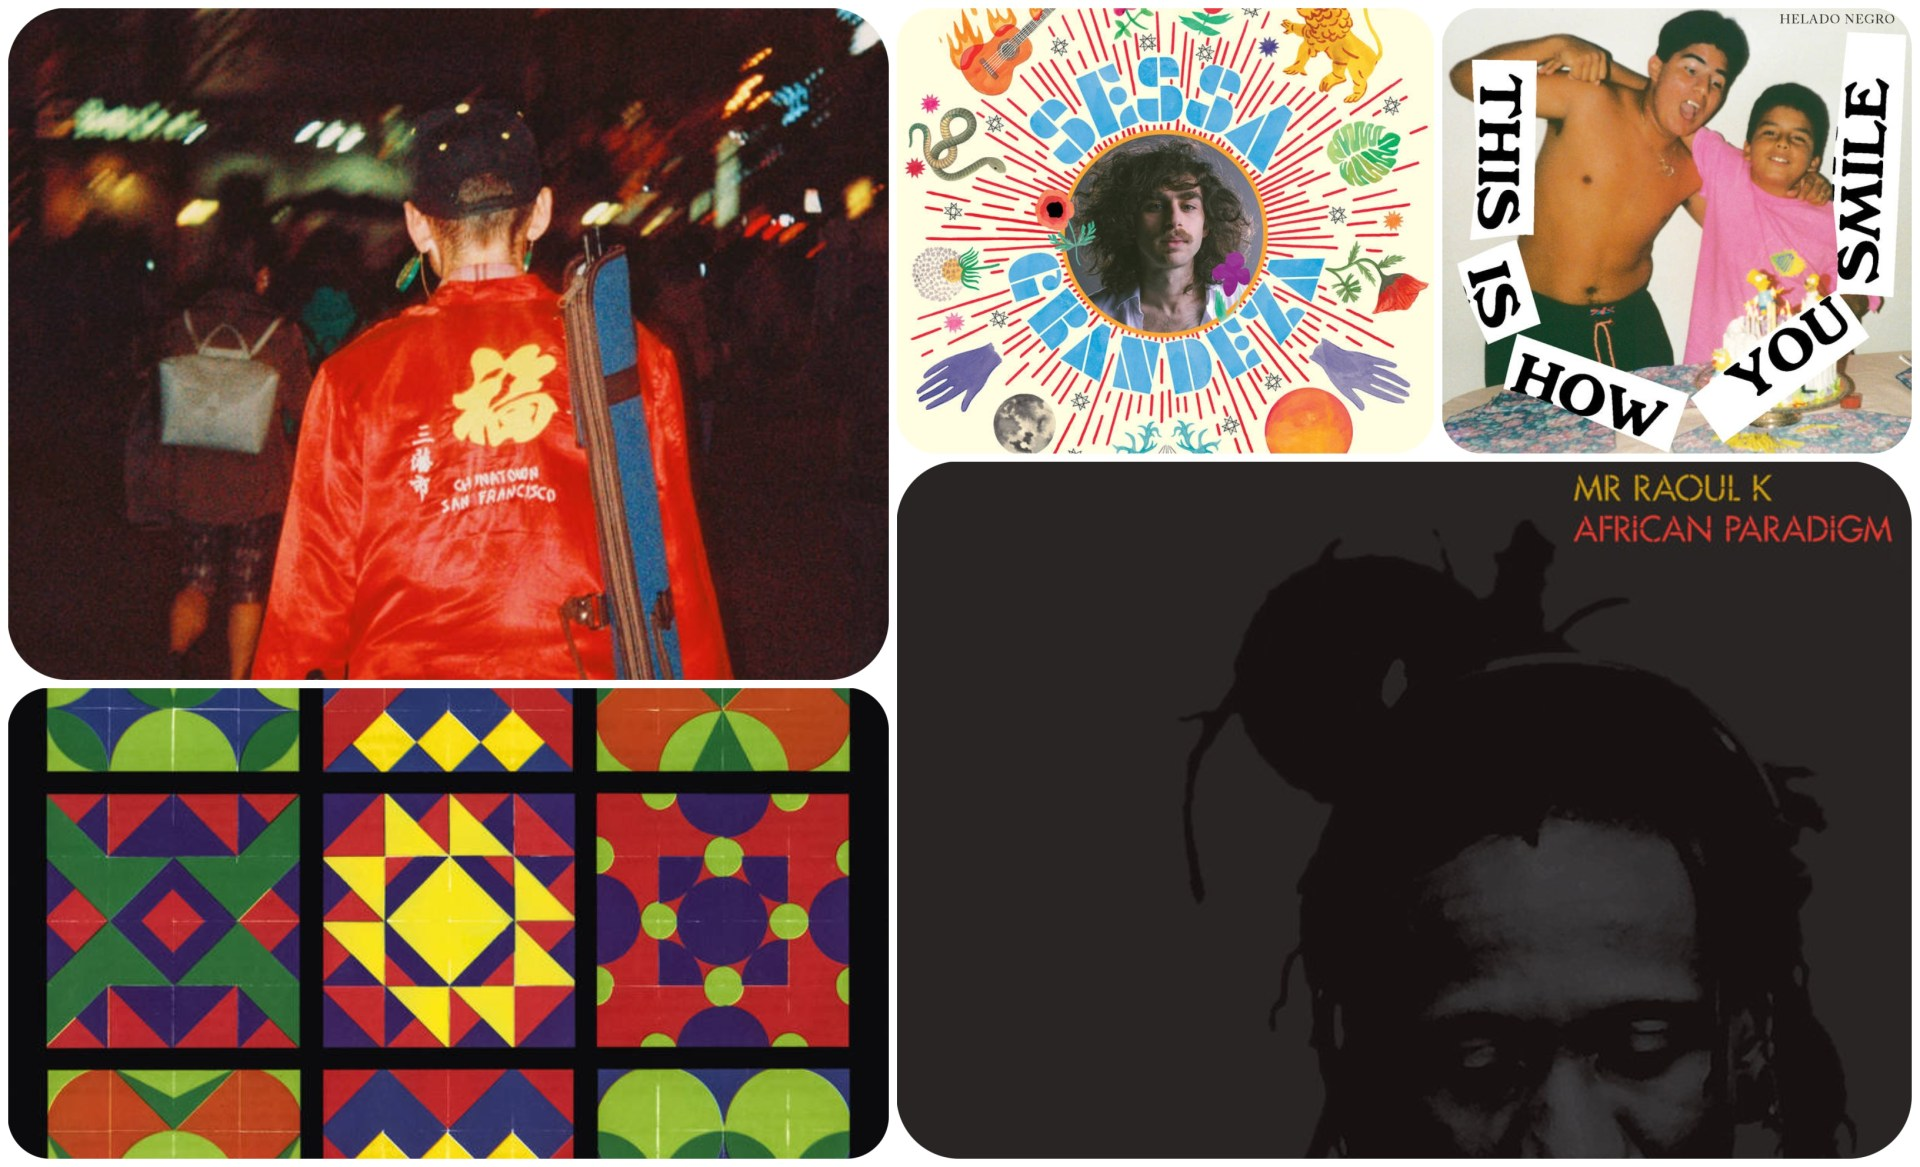 Five superb albums you need to hear.